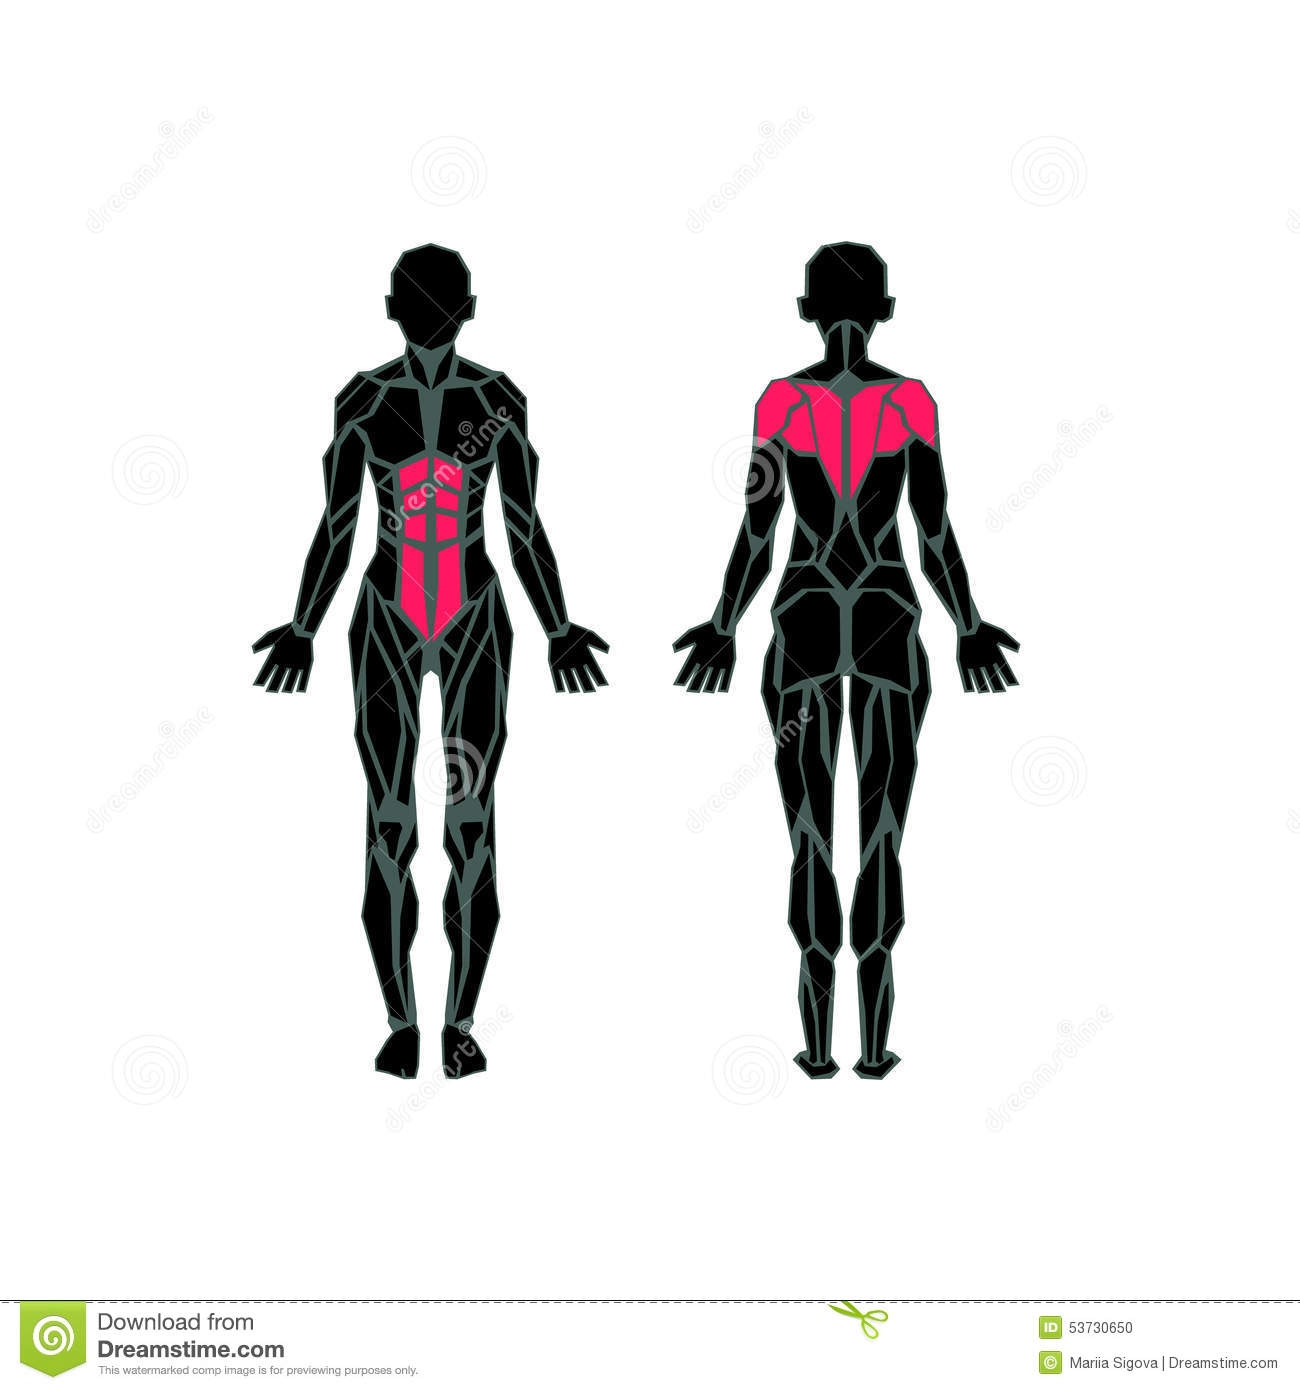 female muscular system anatomy stock photo - image: 51405110, Muscles